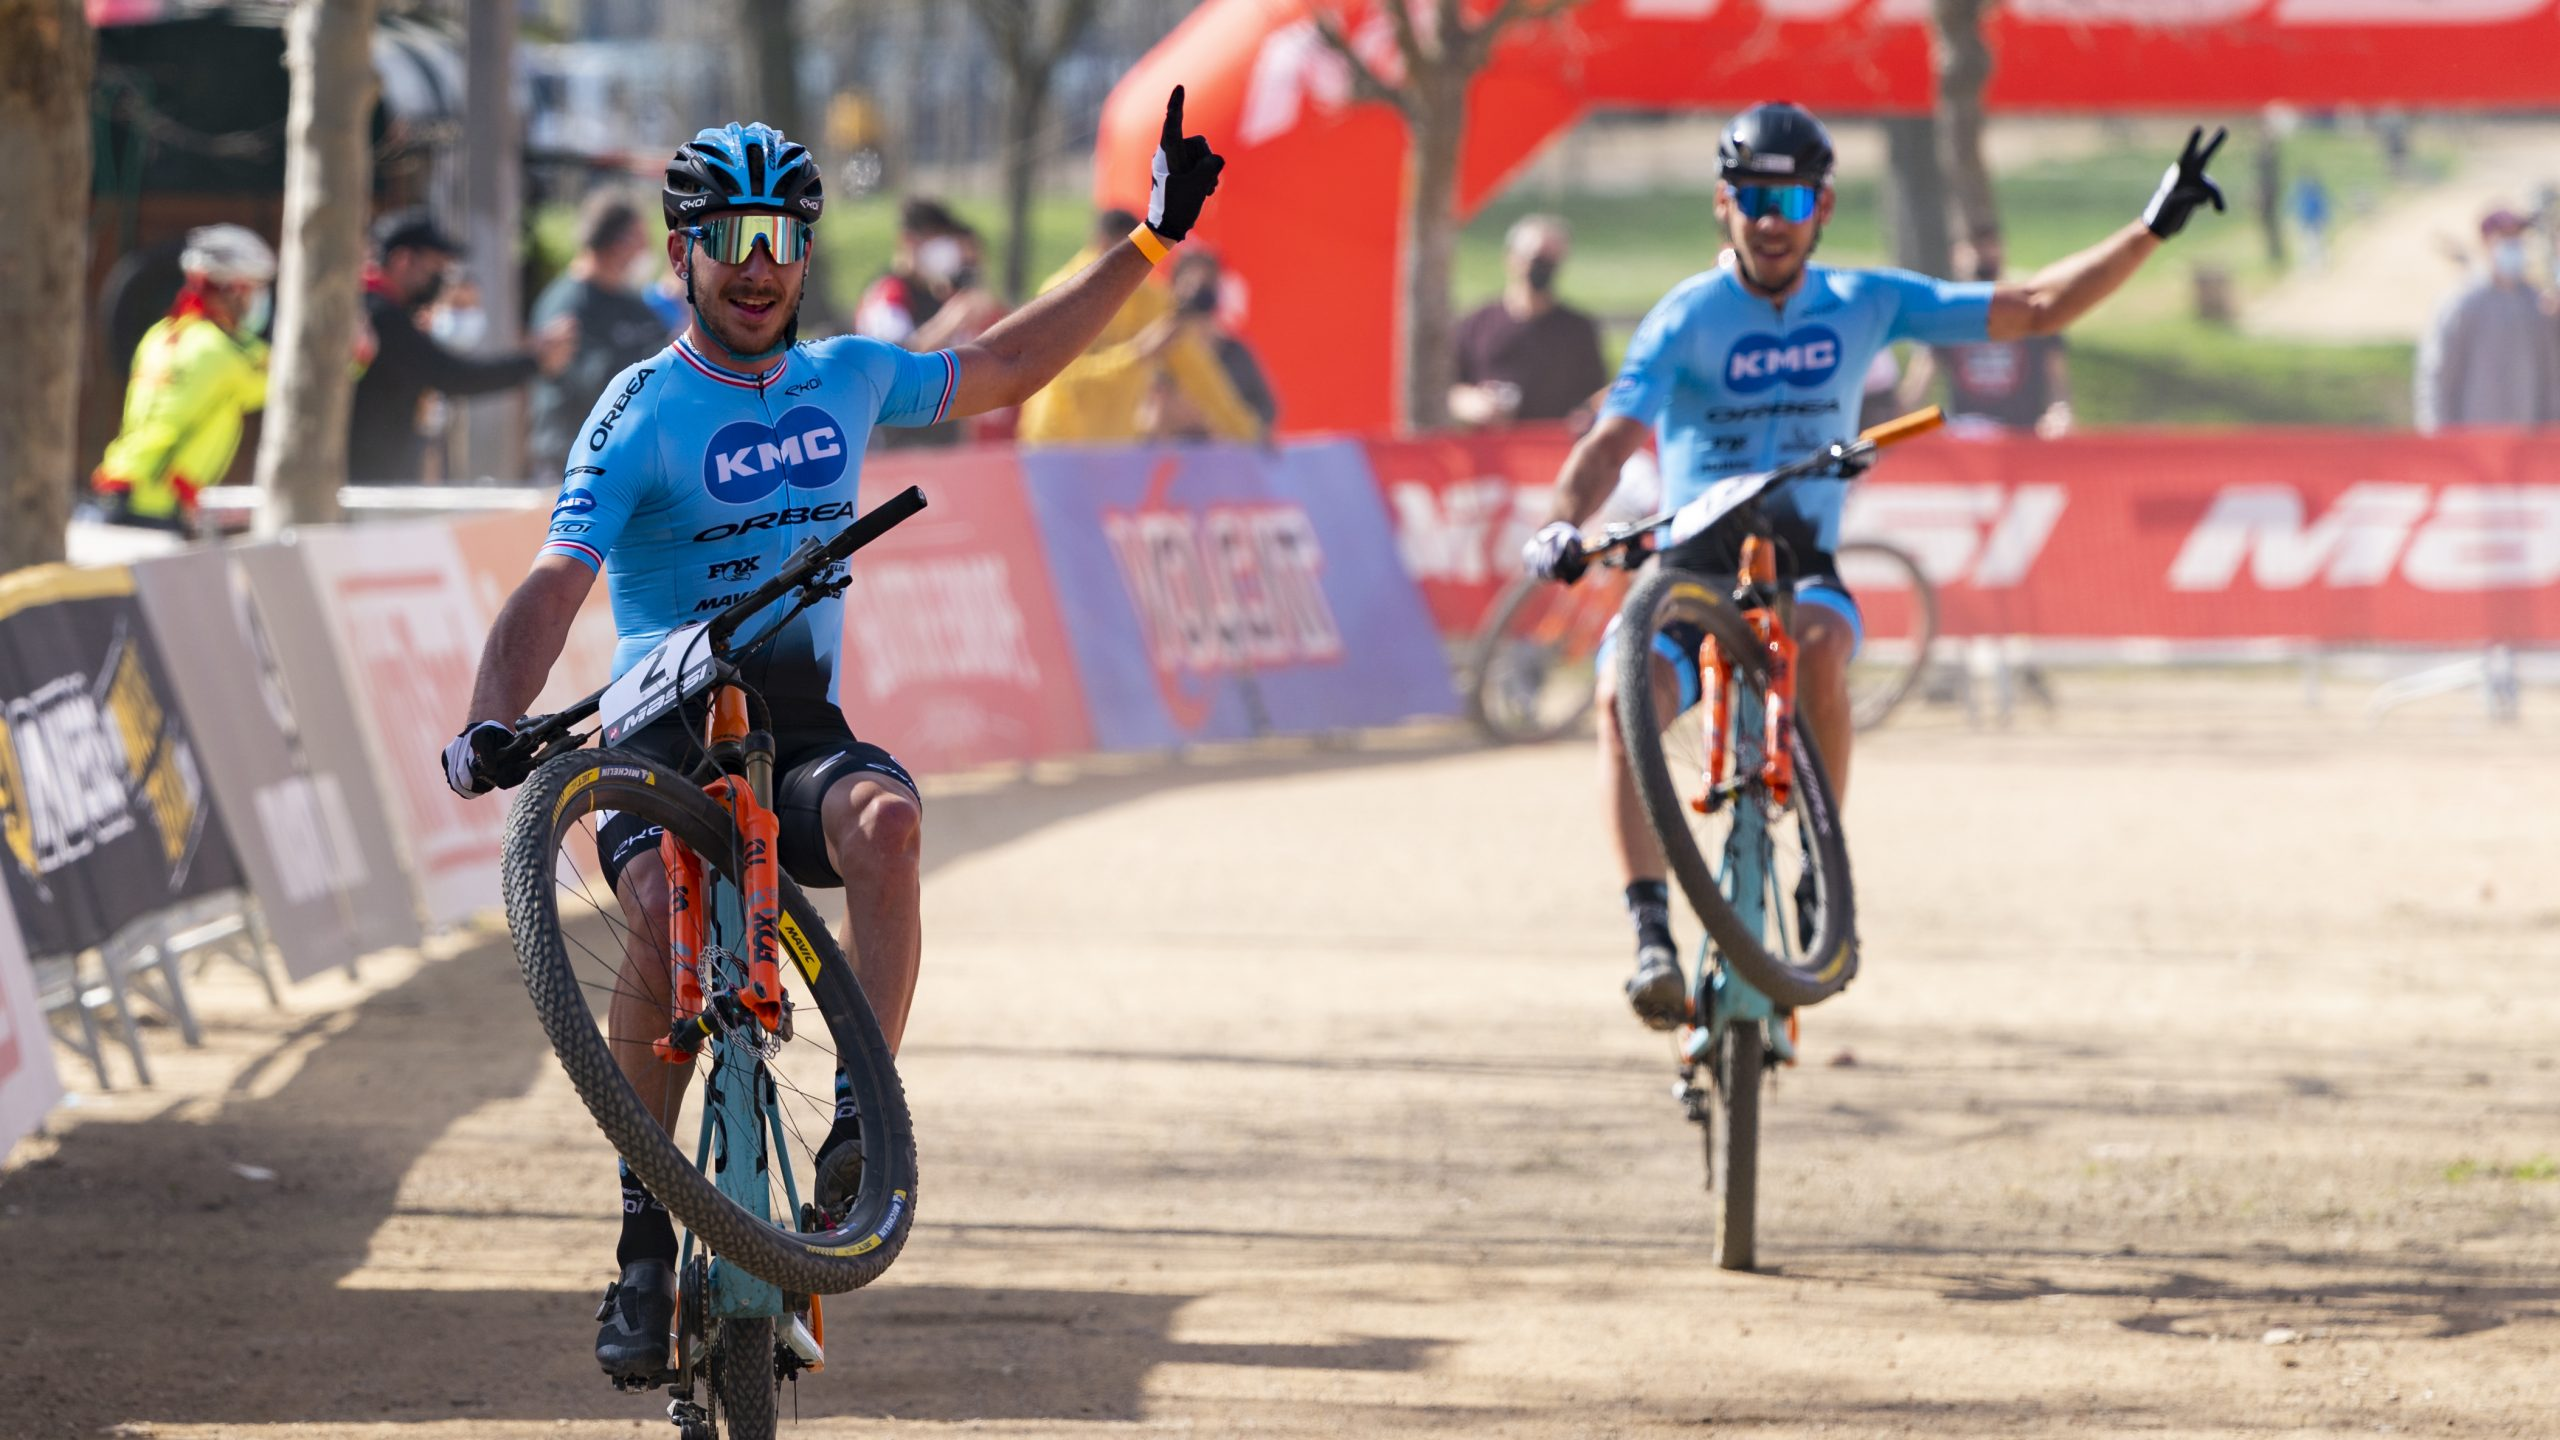 Copa Catalunya Banyoles : Victory for Victor Koretzky Thomas Litscher second